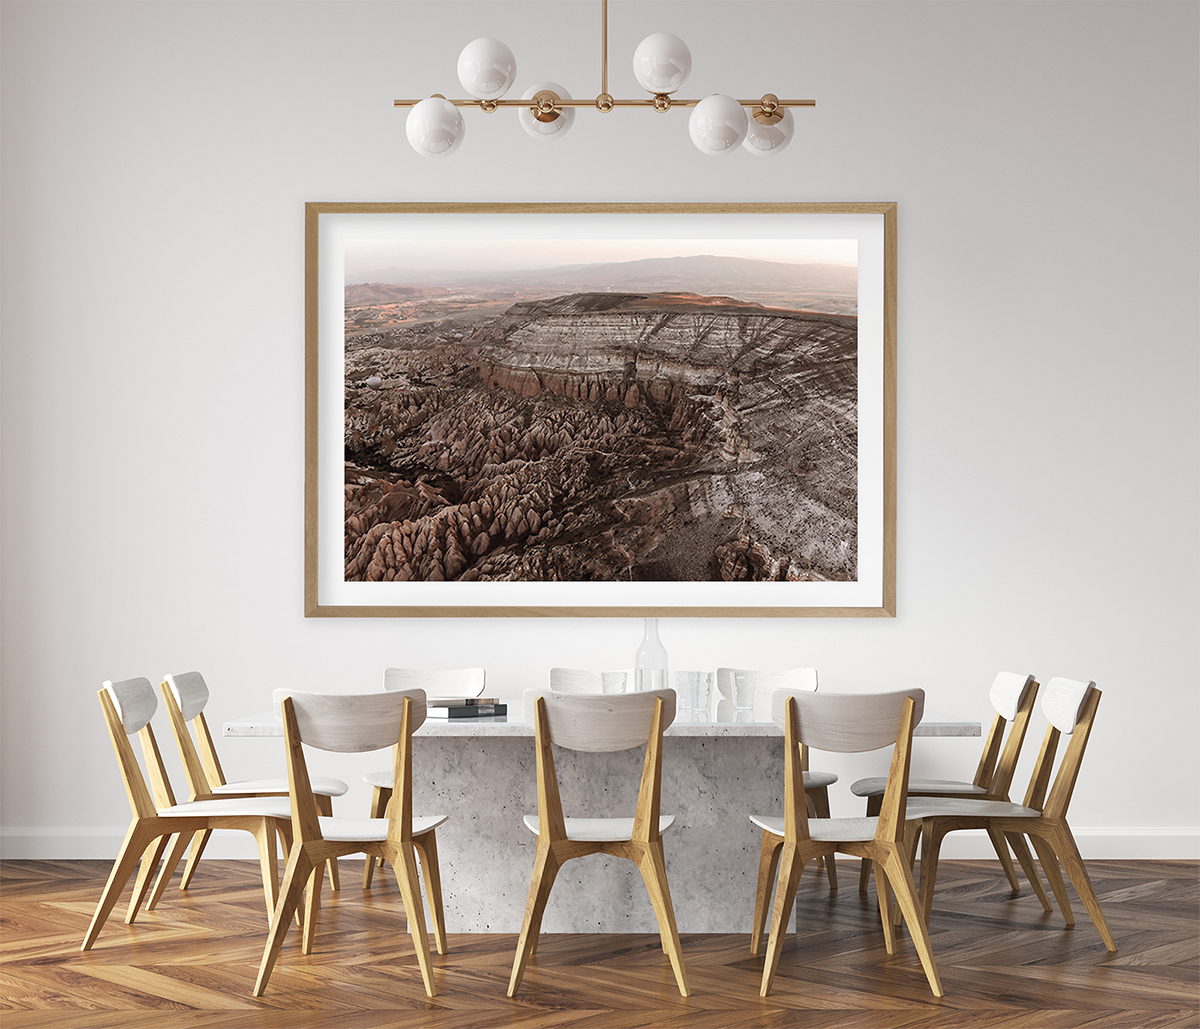 scandinavian-style-interior-wall-art-photography-print-stephanie-janett.jpg